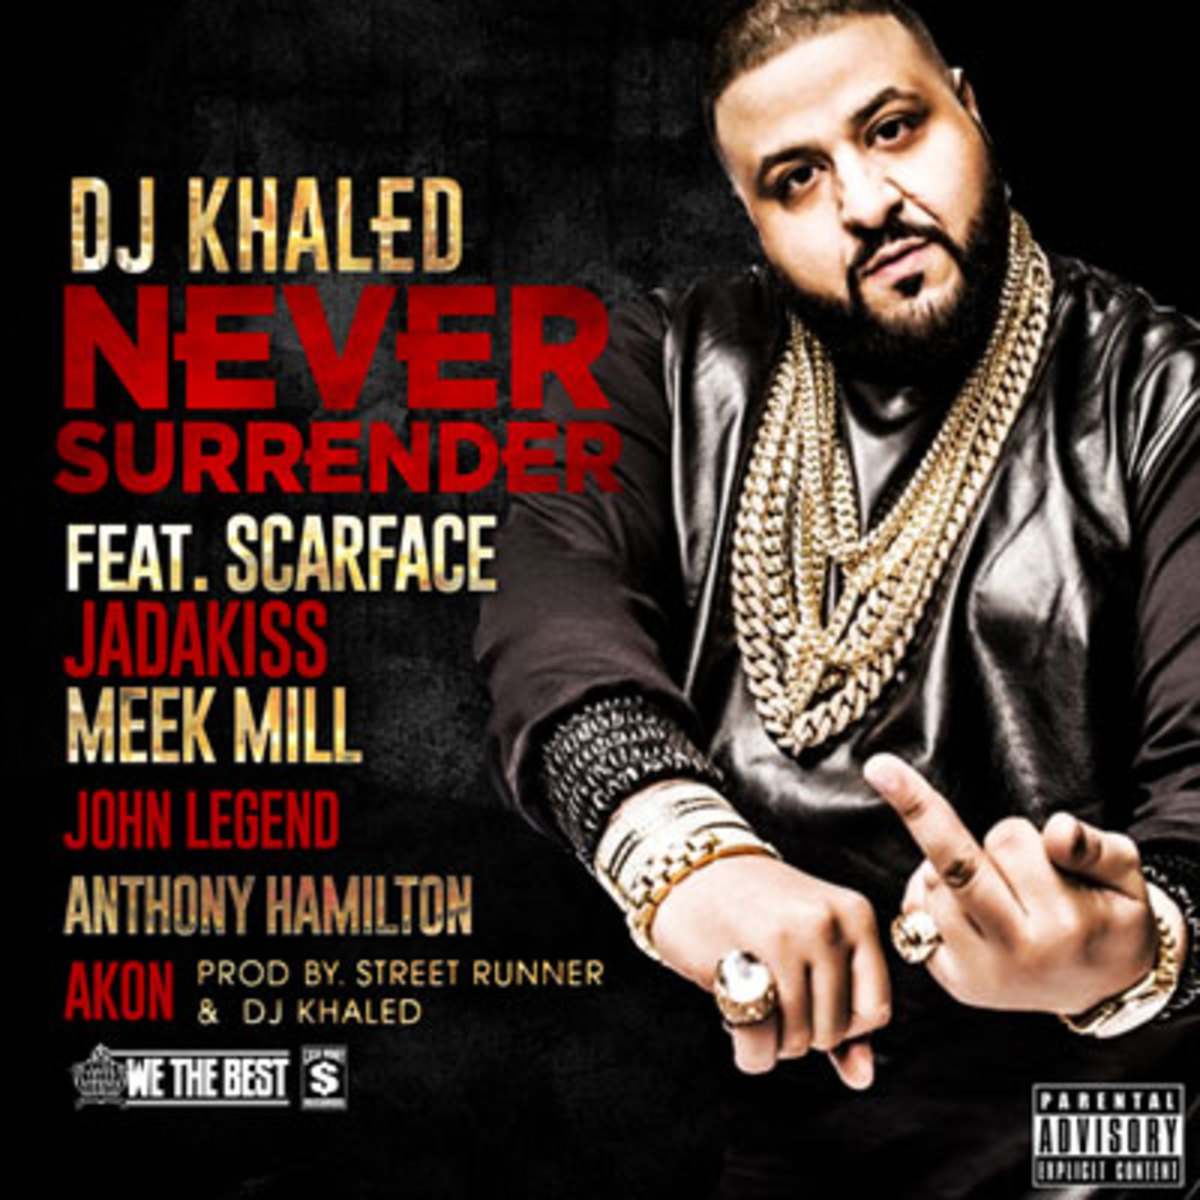 djkhaled-neversurrender.jpg